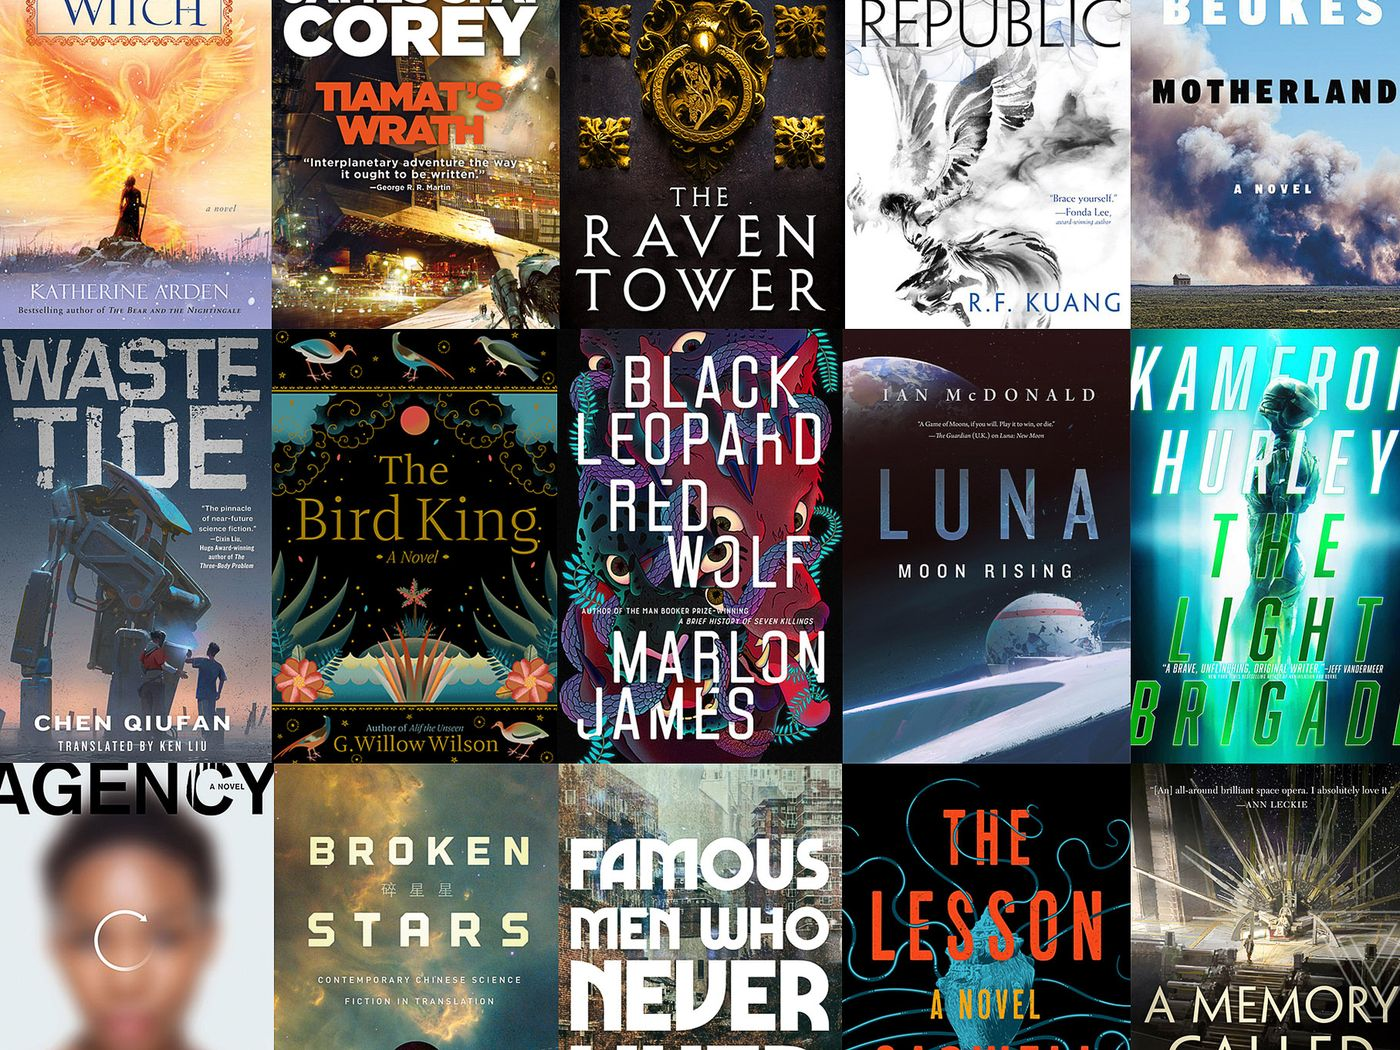 A lifetime sci-fi reader ranks the top 15 best science fiction books